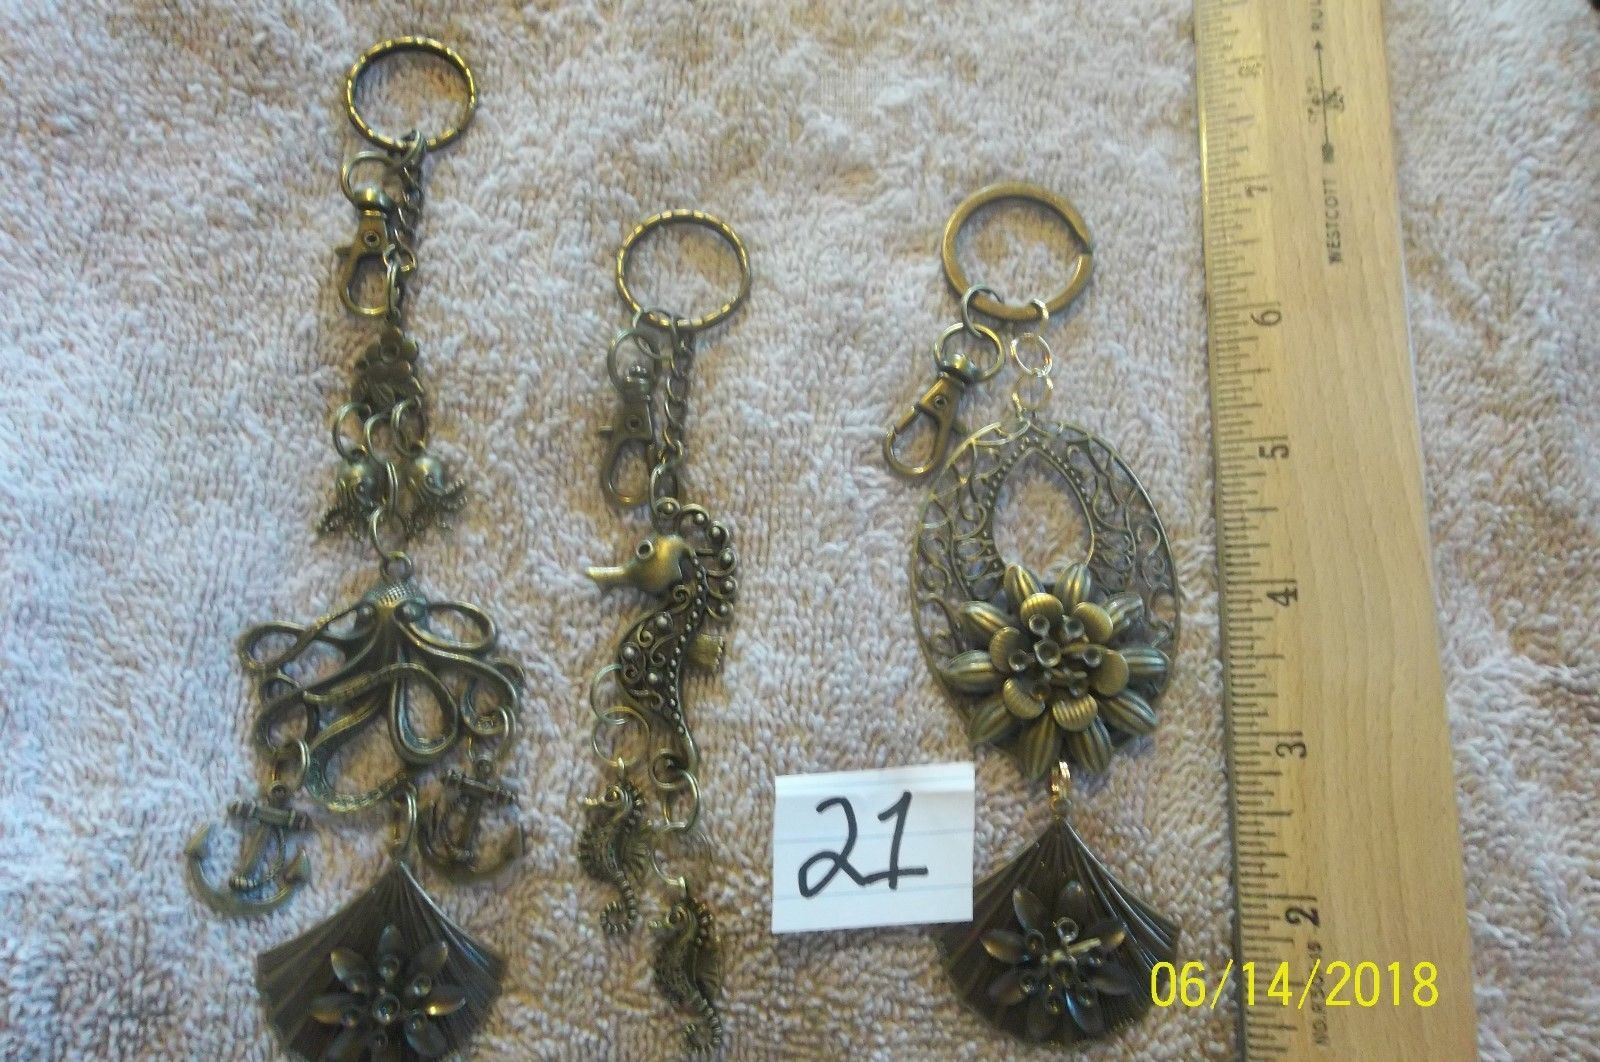 #purse jewelry bronze color keychain backpack filigree charms lot of 3 floral 21